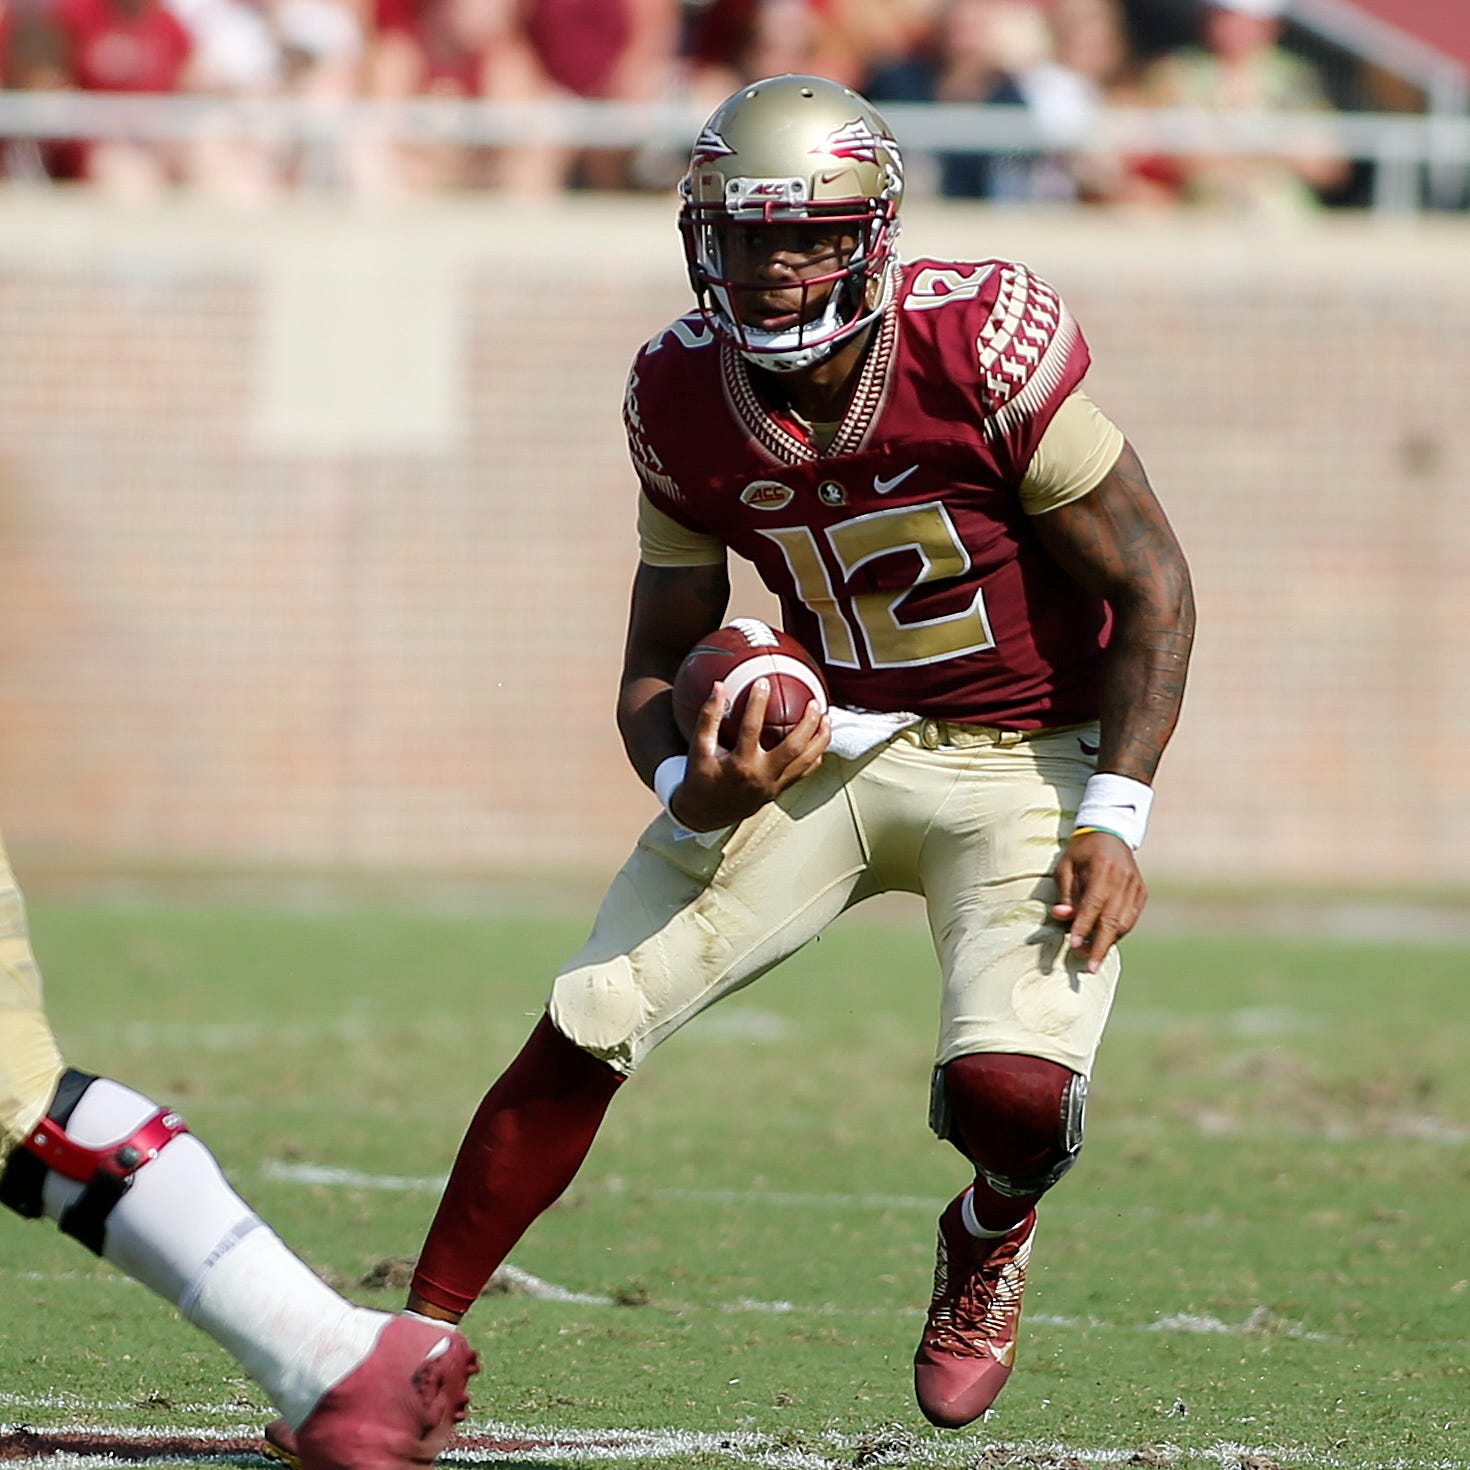 Game updates: FSU leads Northern Illinois in the fourth quarter